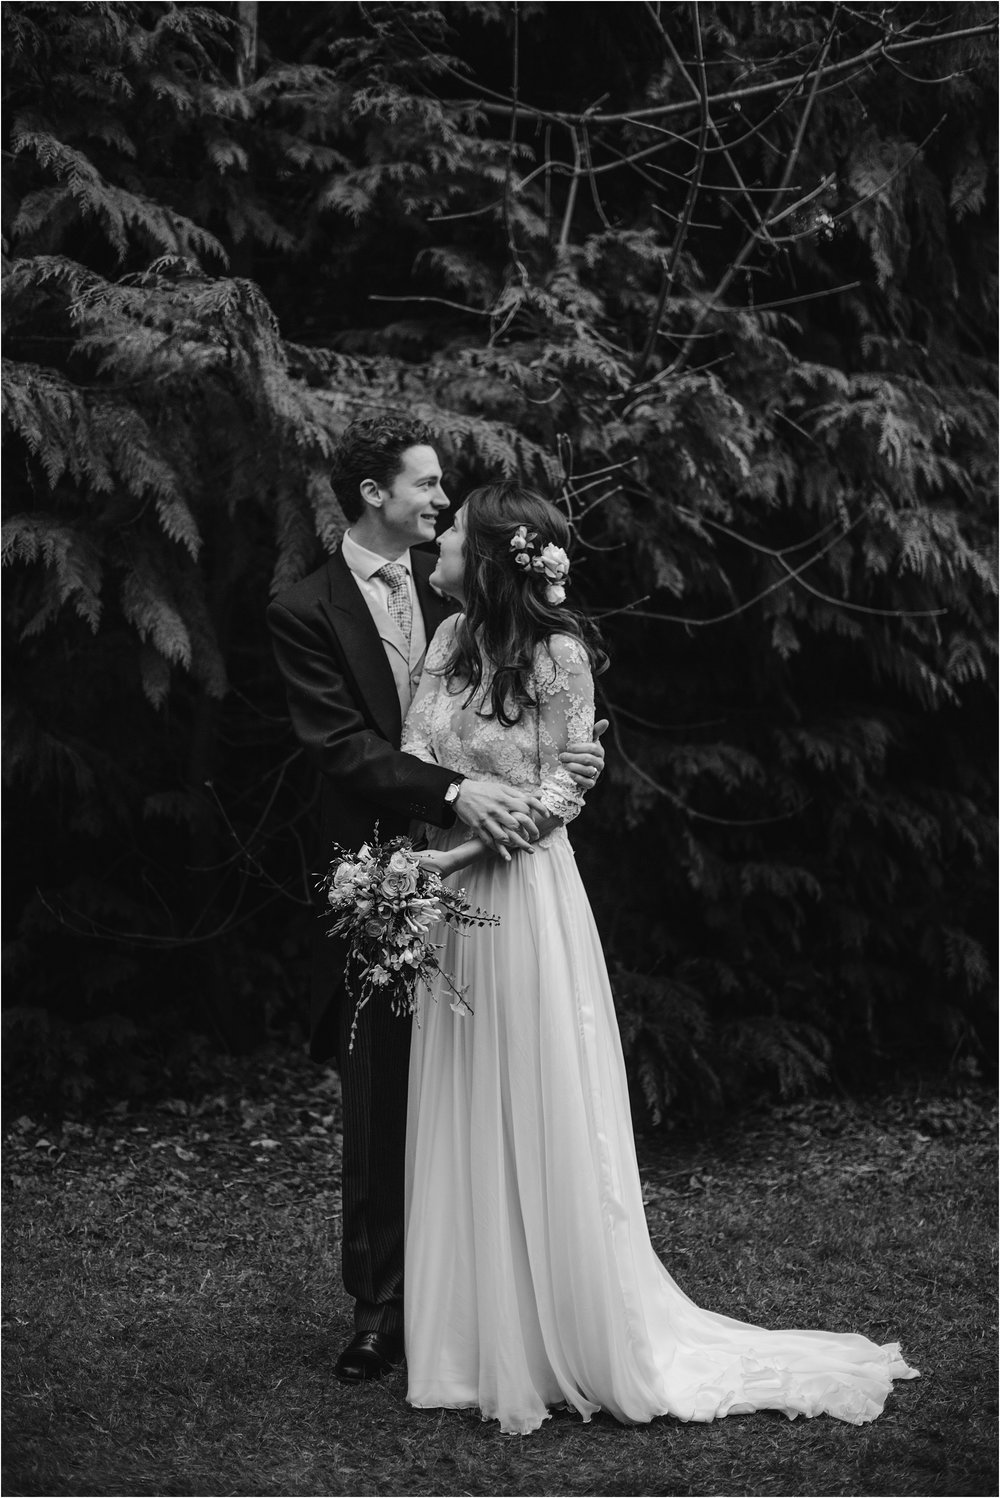 Rose+Harry-outdoor-english-wedding-photography__0150.jpg